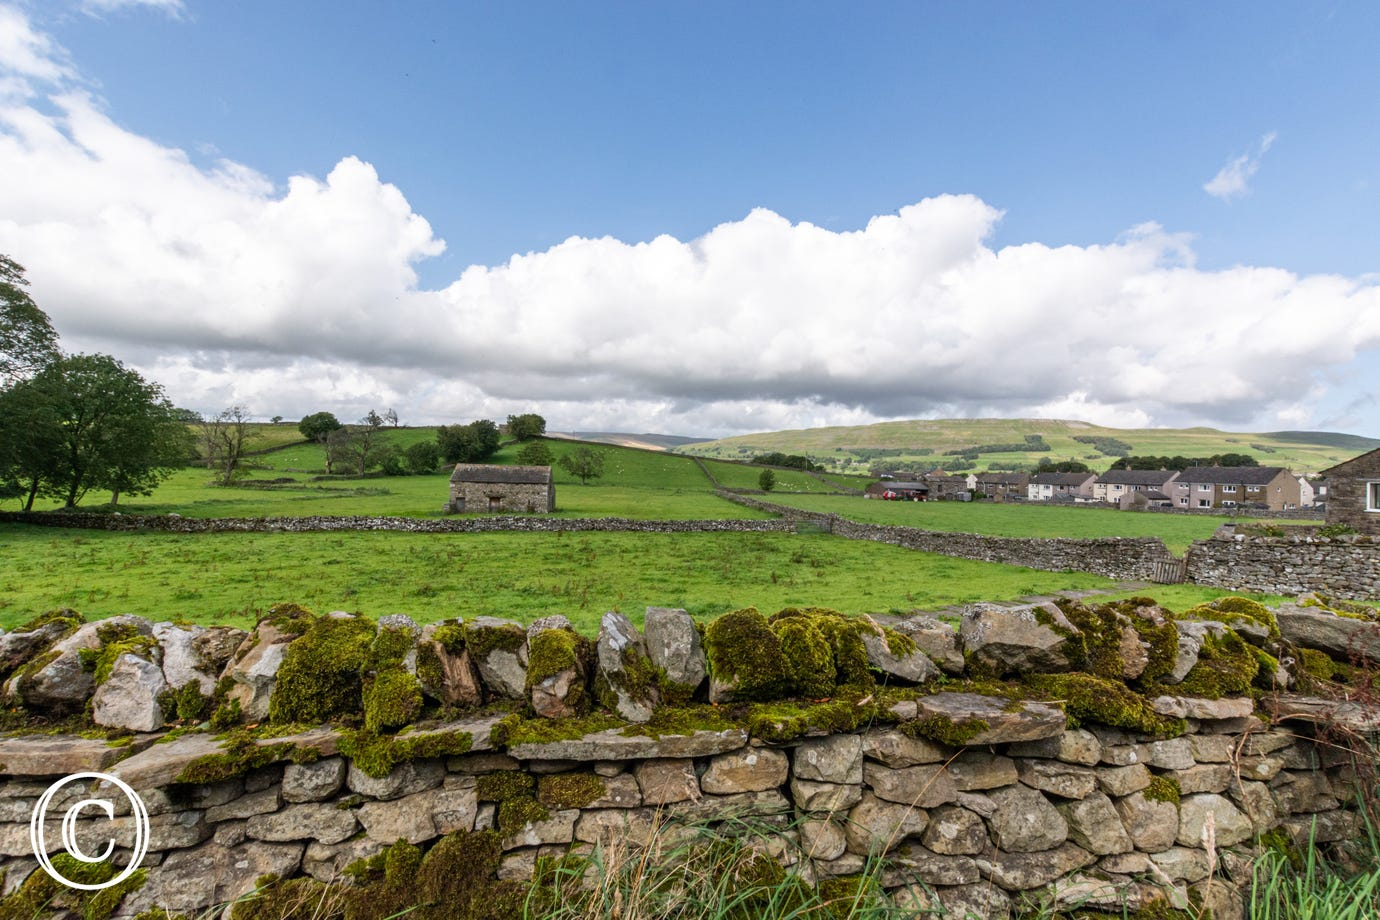 The view over the Wensleydale countryside from the patio area